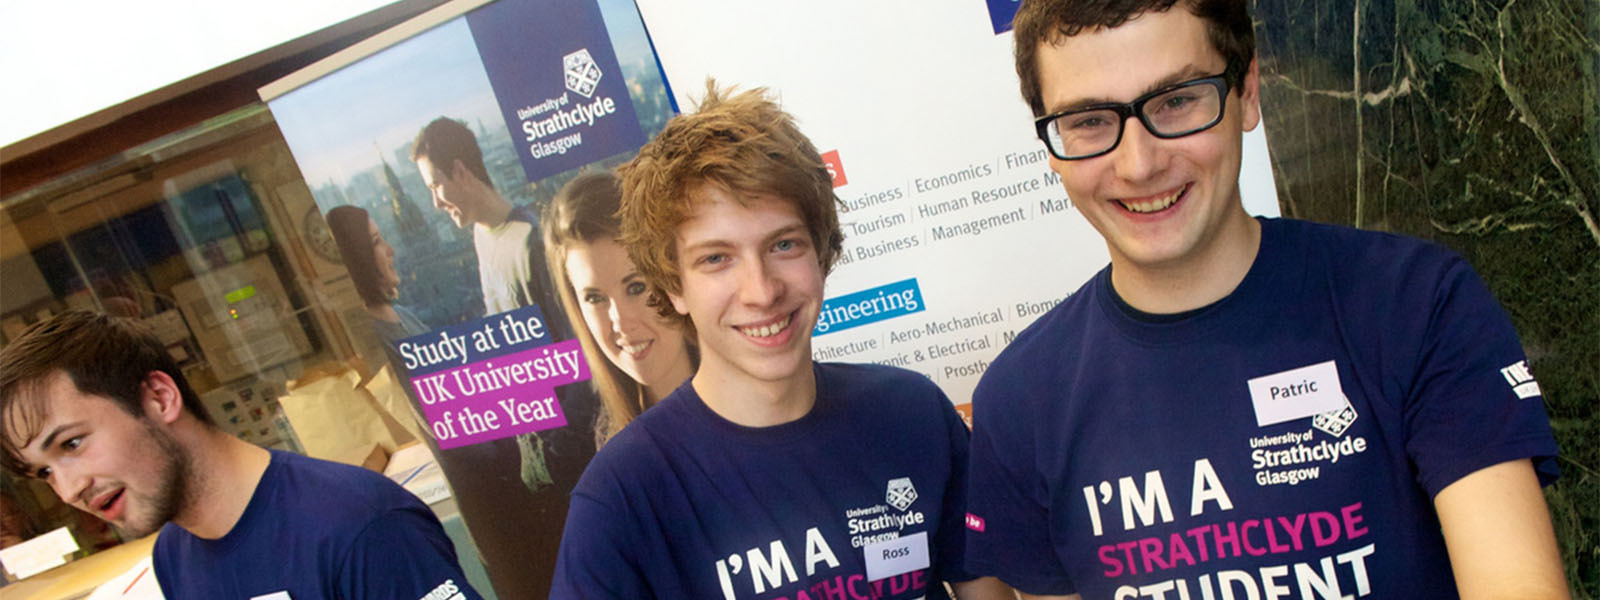 Student ambassadors at an open day